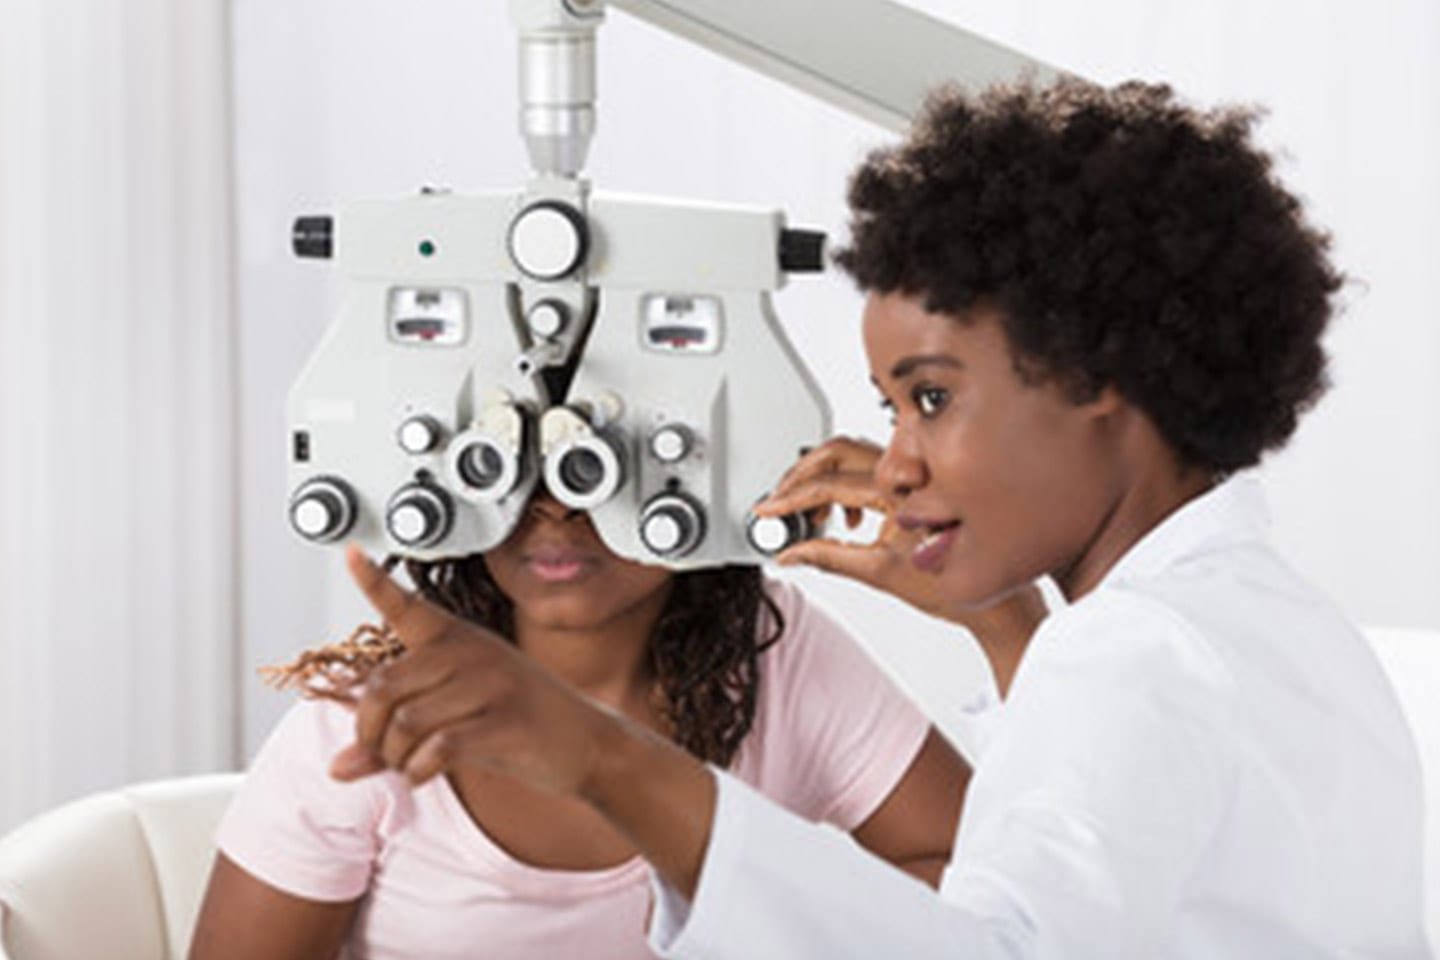 The Differences Between Eye Exams and Contact Lens Fittings